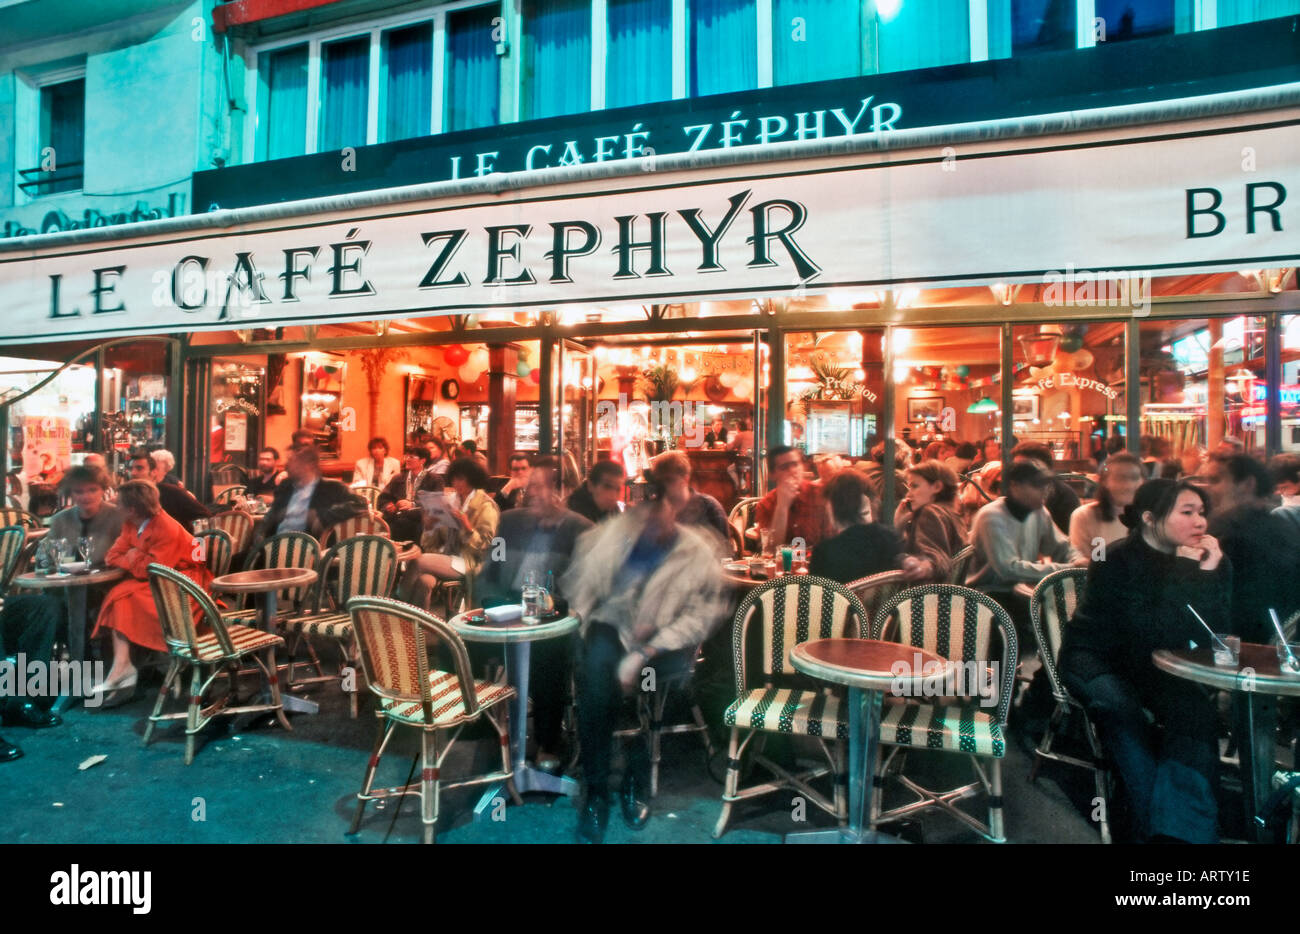 Crowded restaurant table - Paris France People On Terrace Of Le Caf Zephyr Crowded French Restaurant At